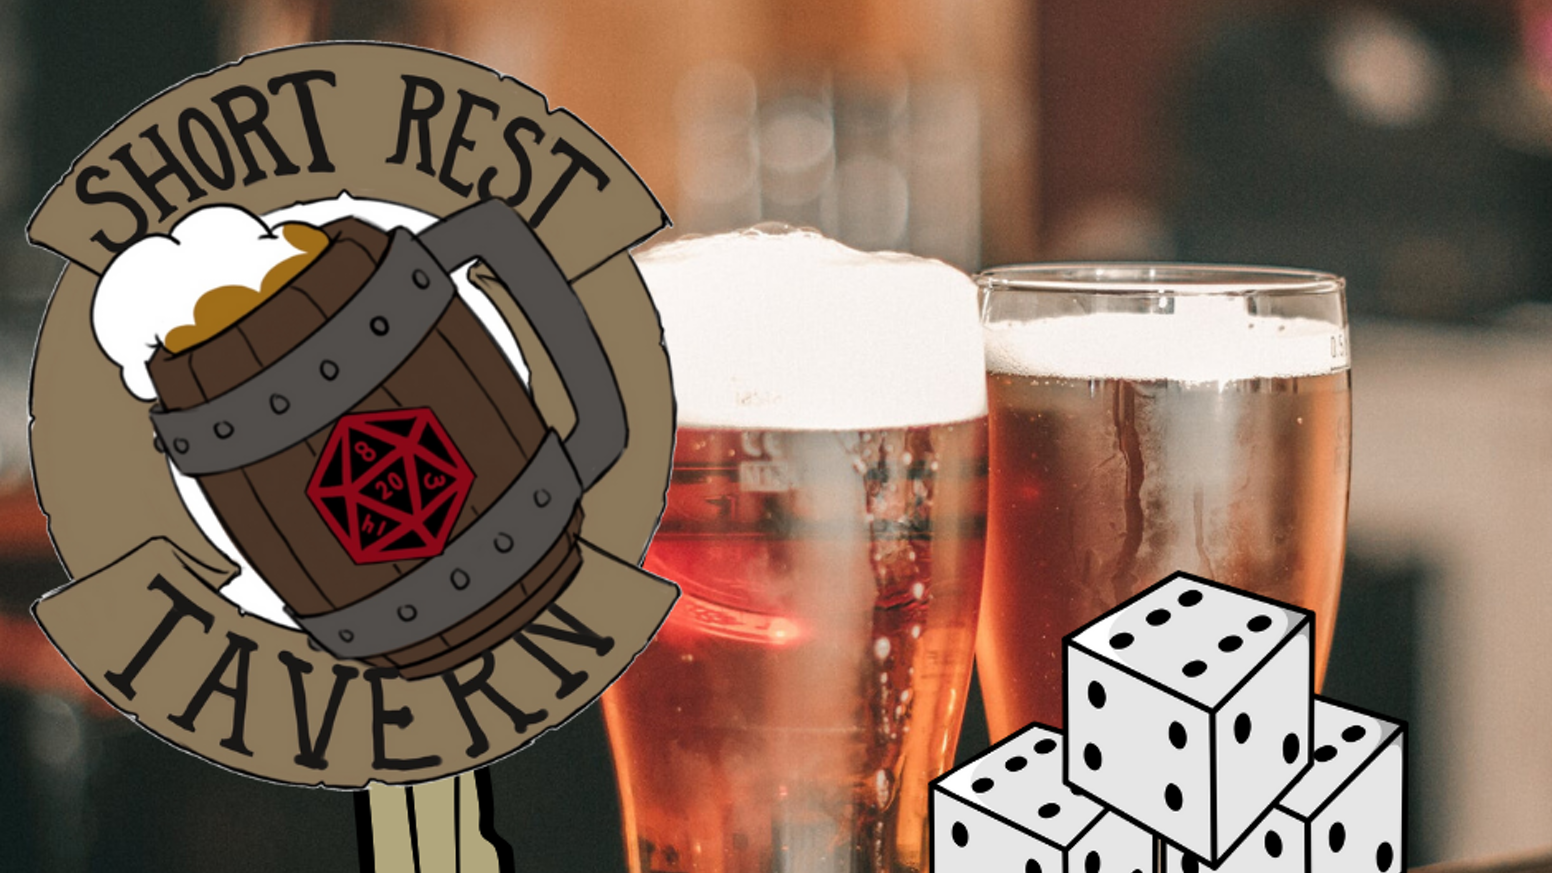 A fantasy themed table-top game Bar in Tucson Games and Gadgets